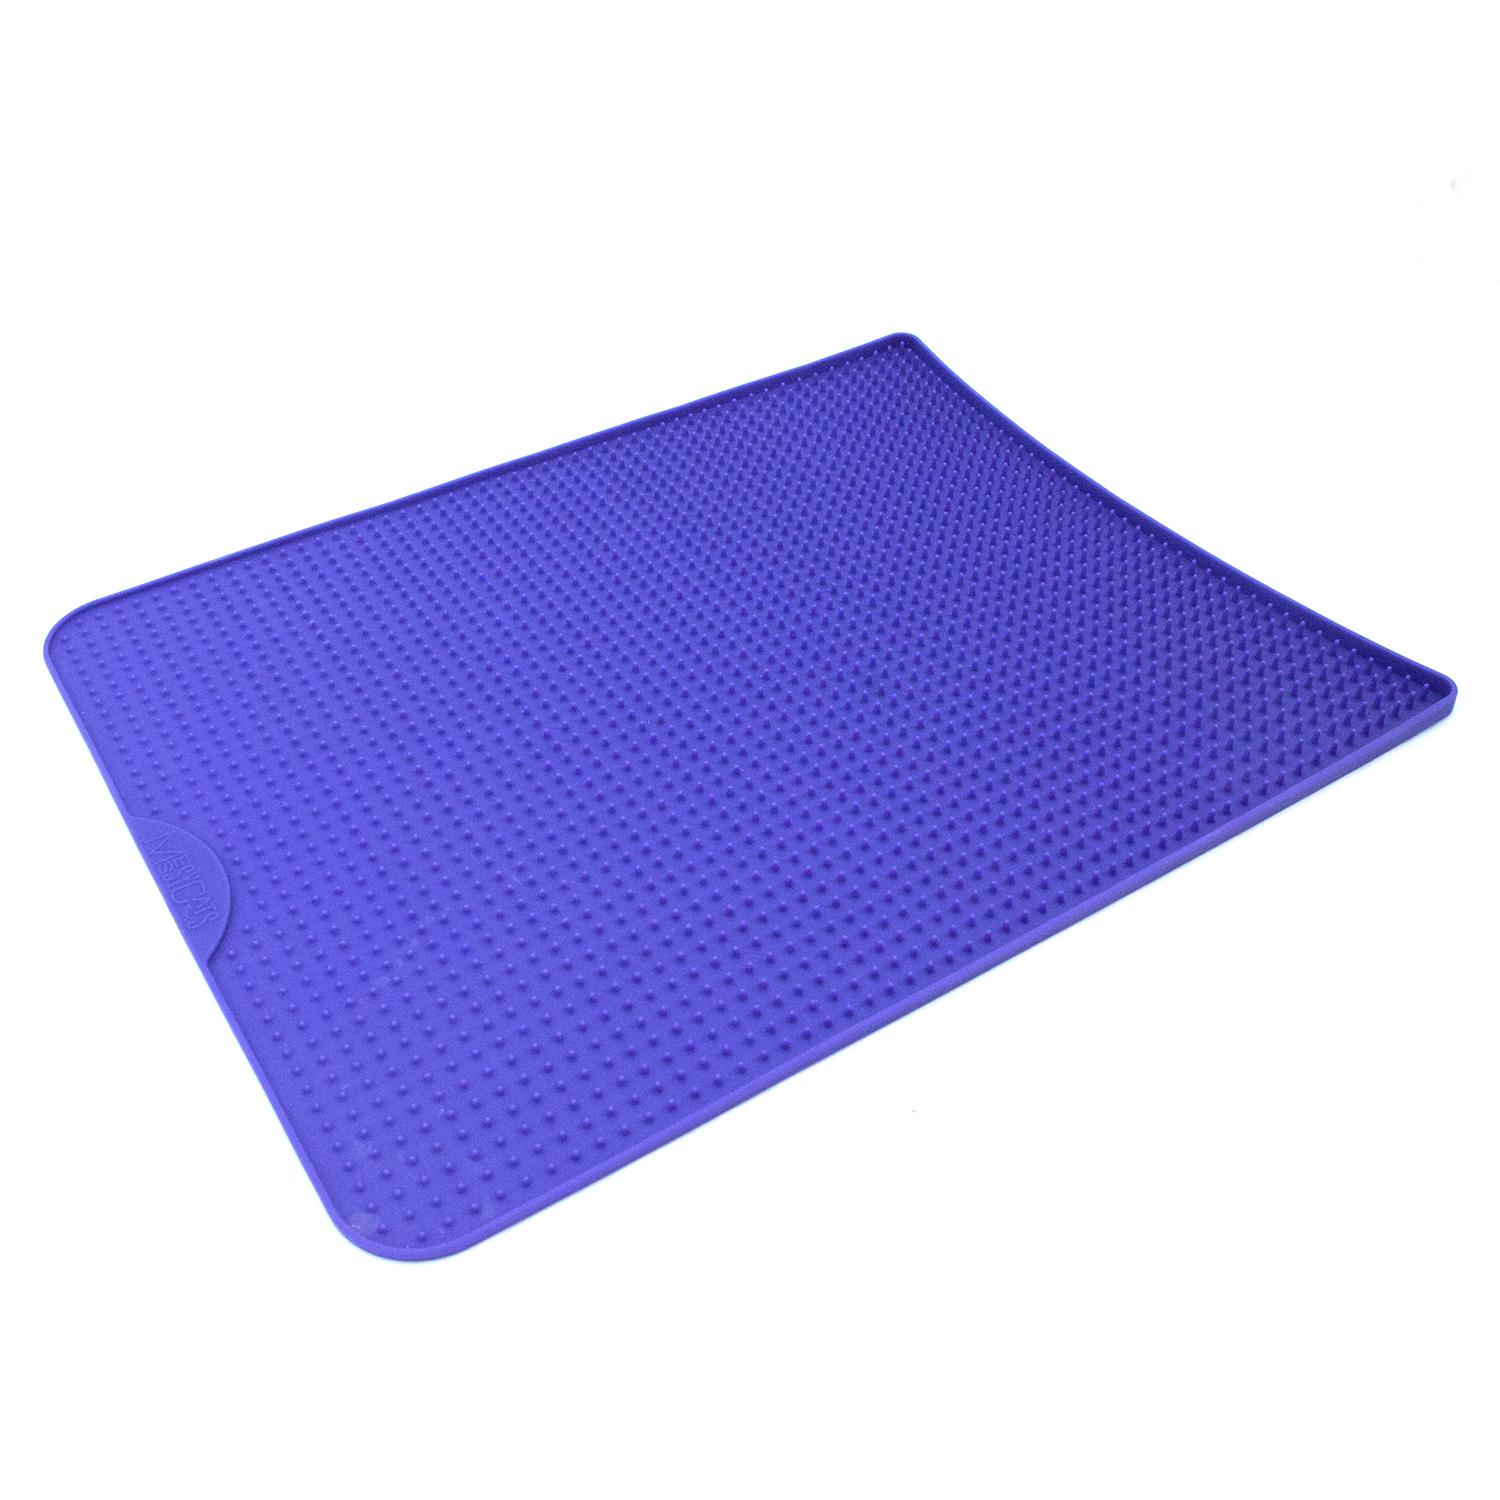 Messy Cats Silicone Litter Mat with Soft Graduated Spikes, Purple Image